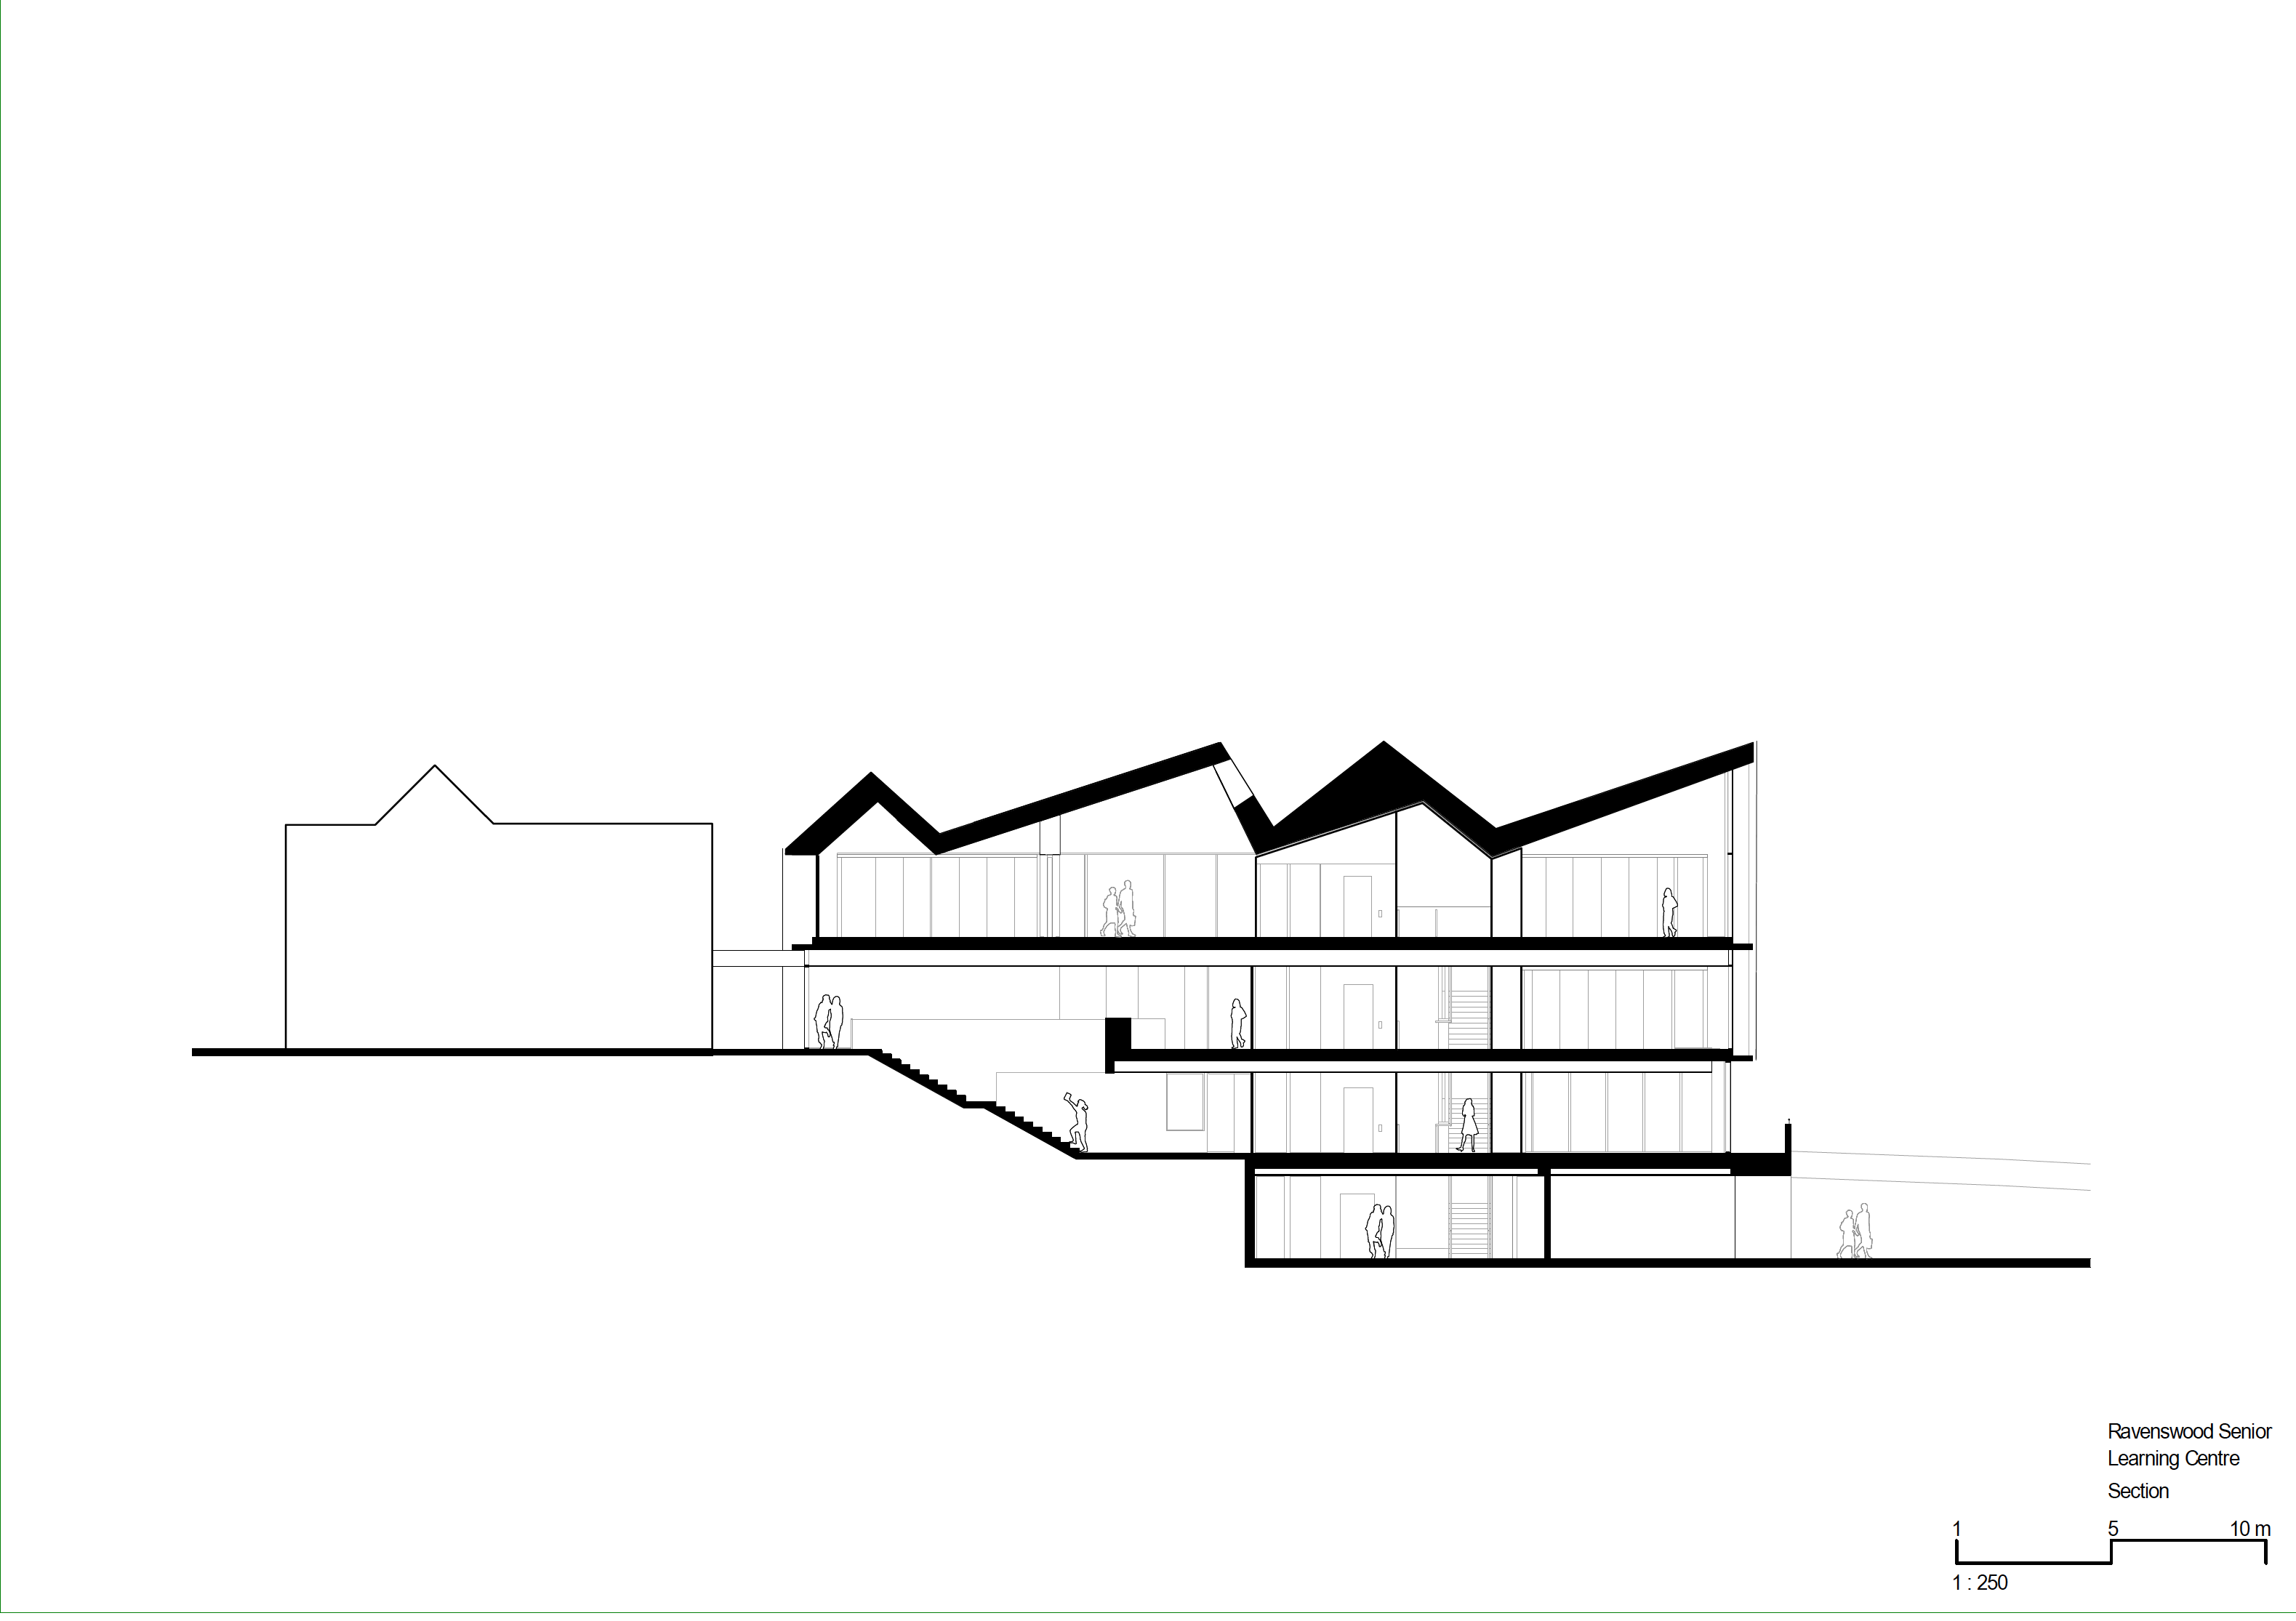 Architectural design drawing of the Ravenswood school located in Sydney, Australia.